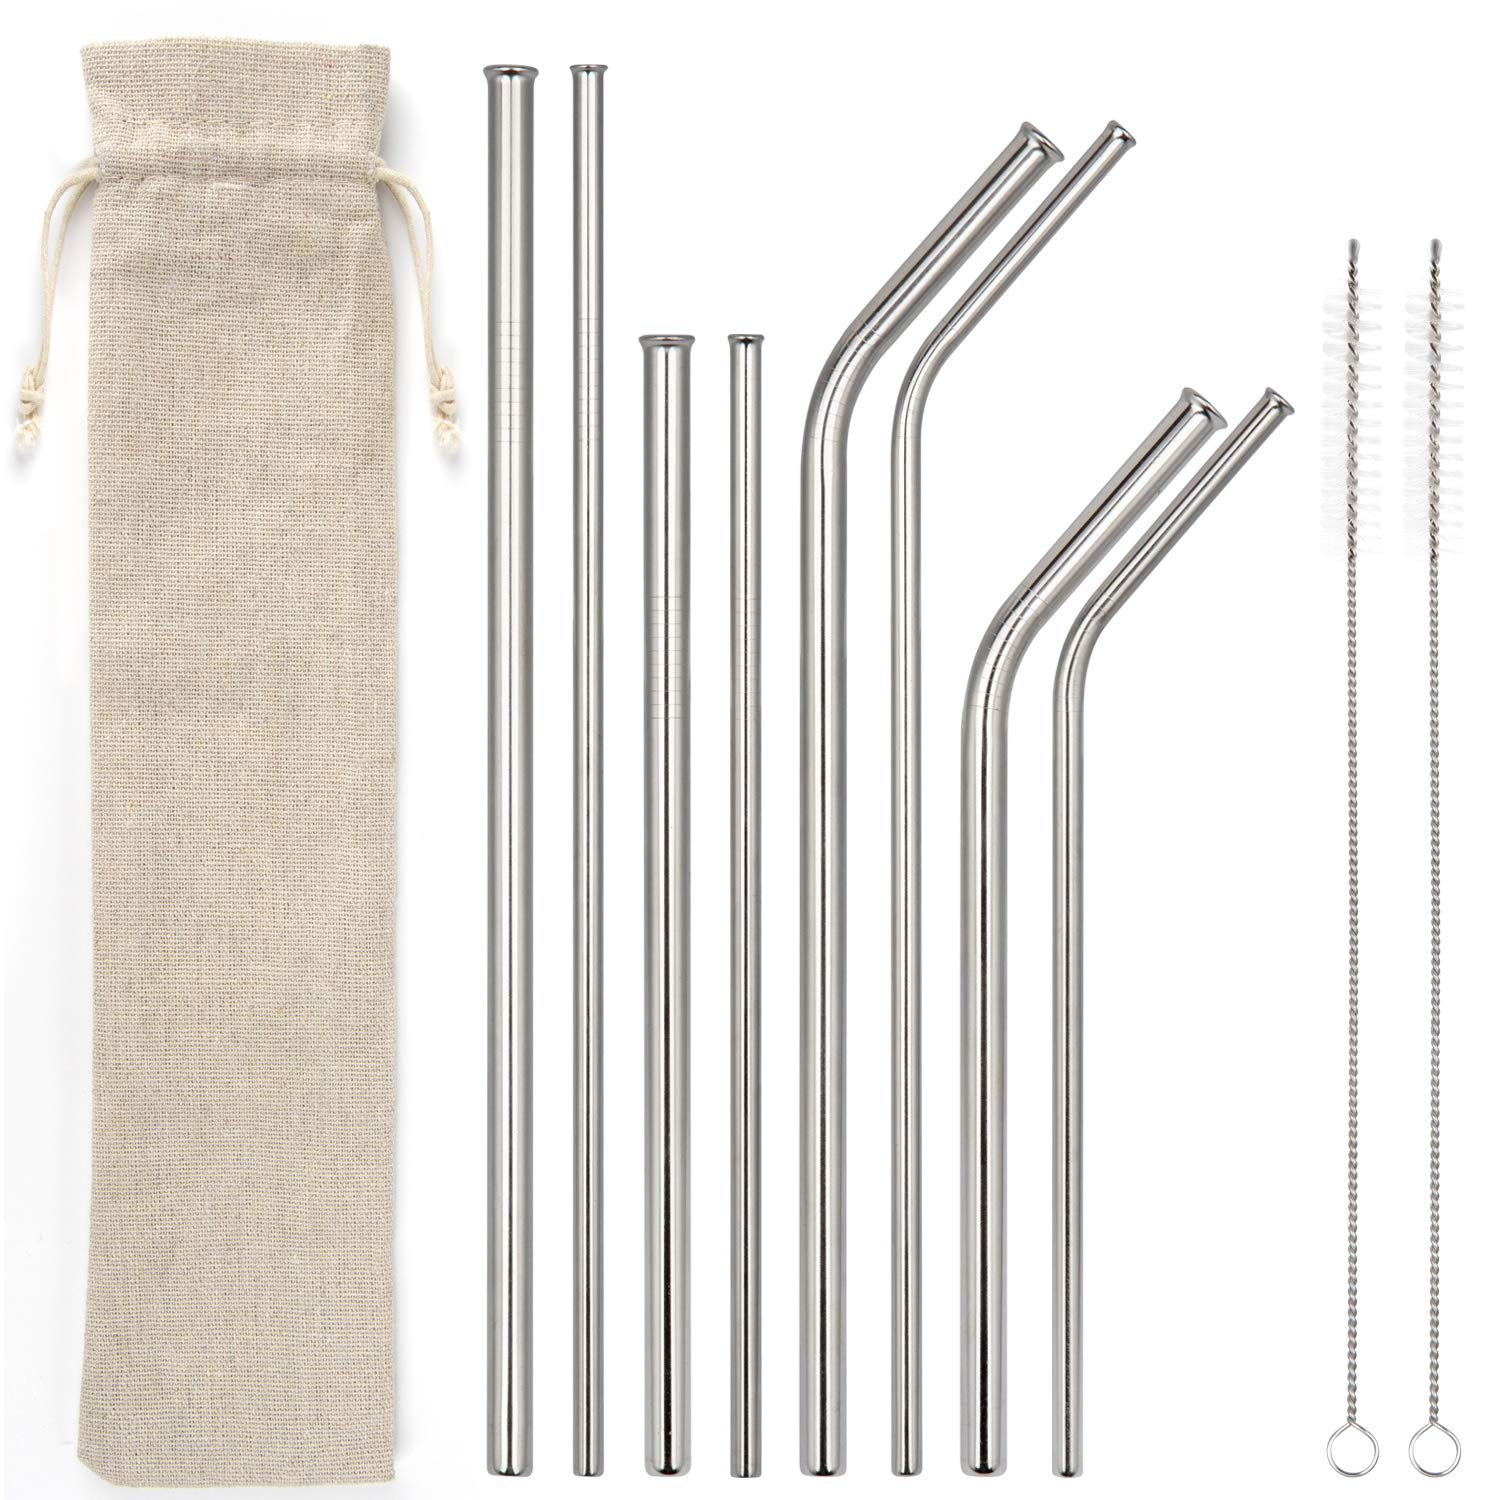 WILTEEXS Non-plastic Drinking Straws 8 Smoothie Reusable,for 20 oz and 30 oz Tumbler Yeti, RTIC, Trail, Starbucks, Ozark, Silver, Newest Anti-scratch Style, Stainless Steel